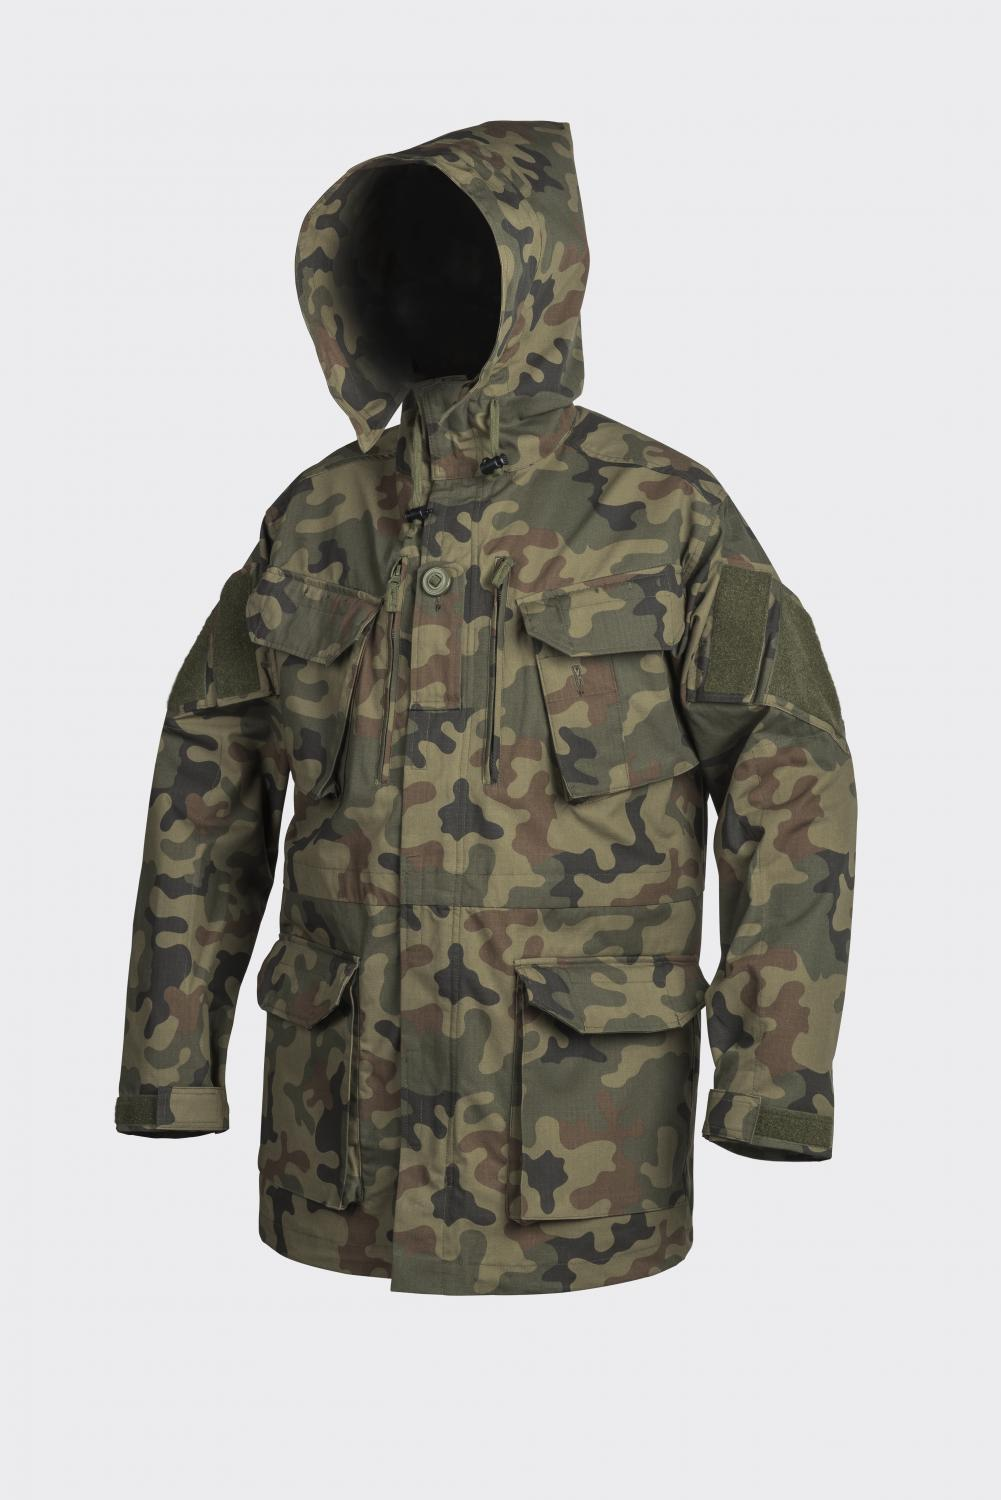 PCS (Personal Clothing System Smock) PL Woodland